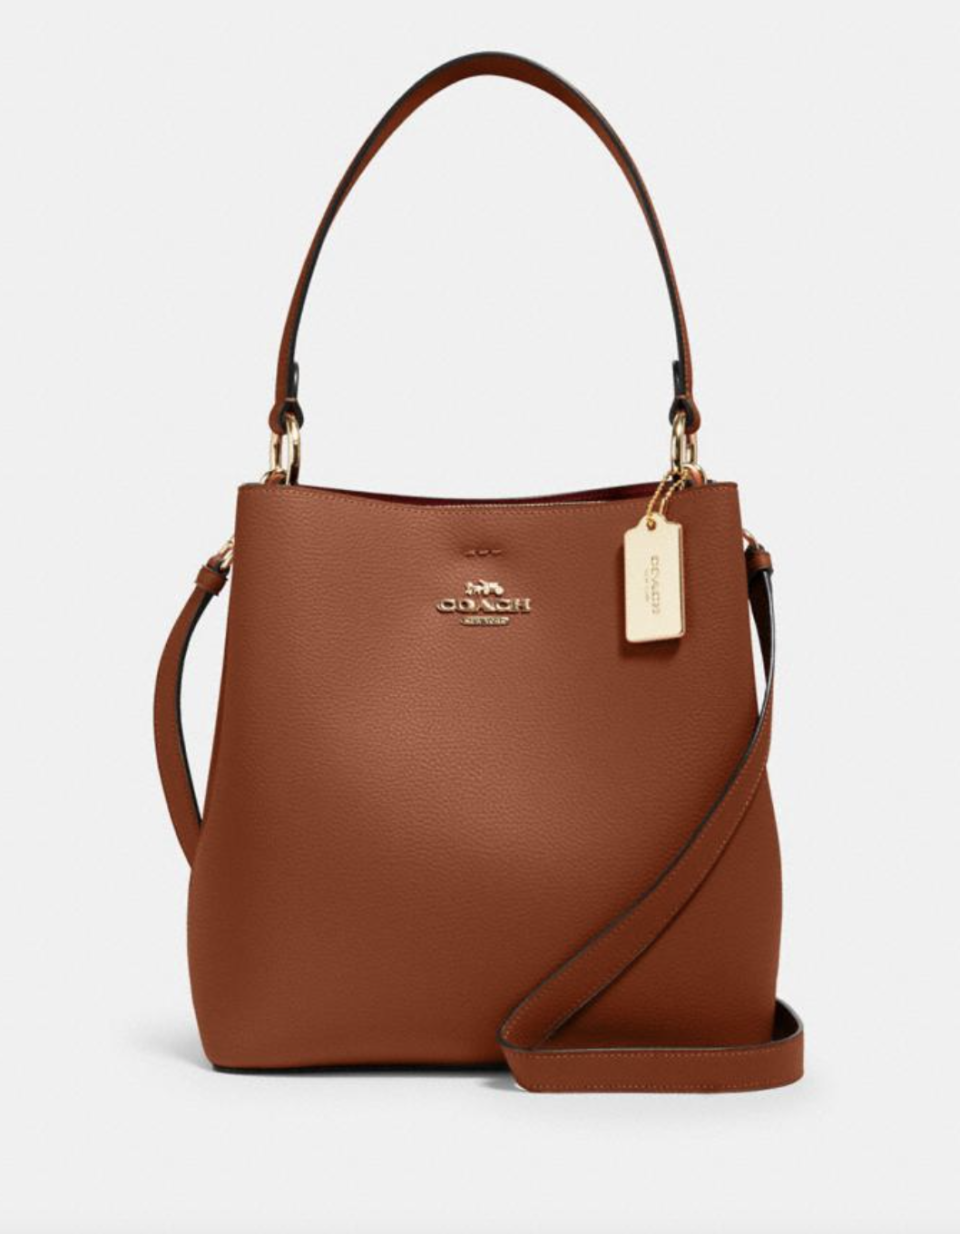 Town Bucket Bag in Redwood/1941 Red (Photo via Coach Outlet)